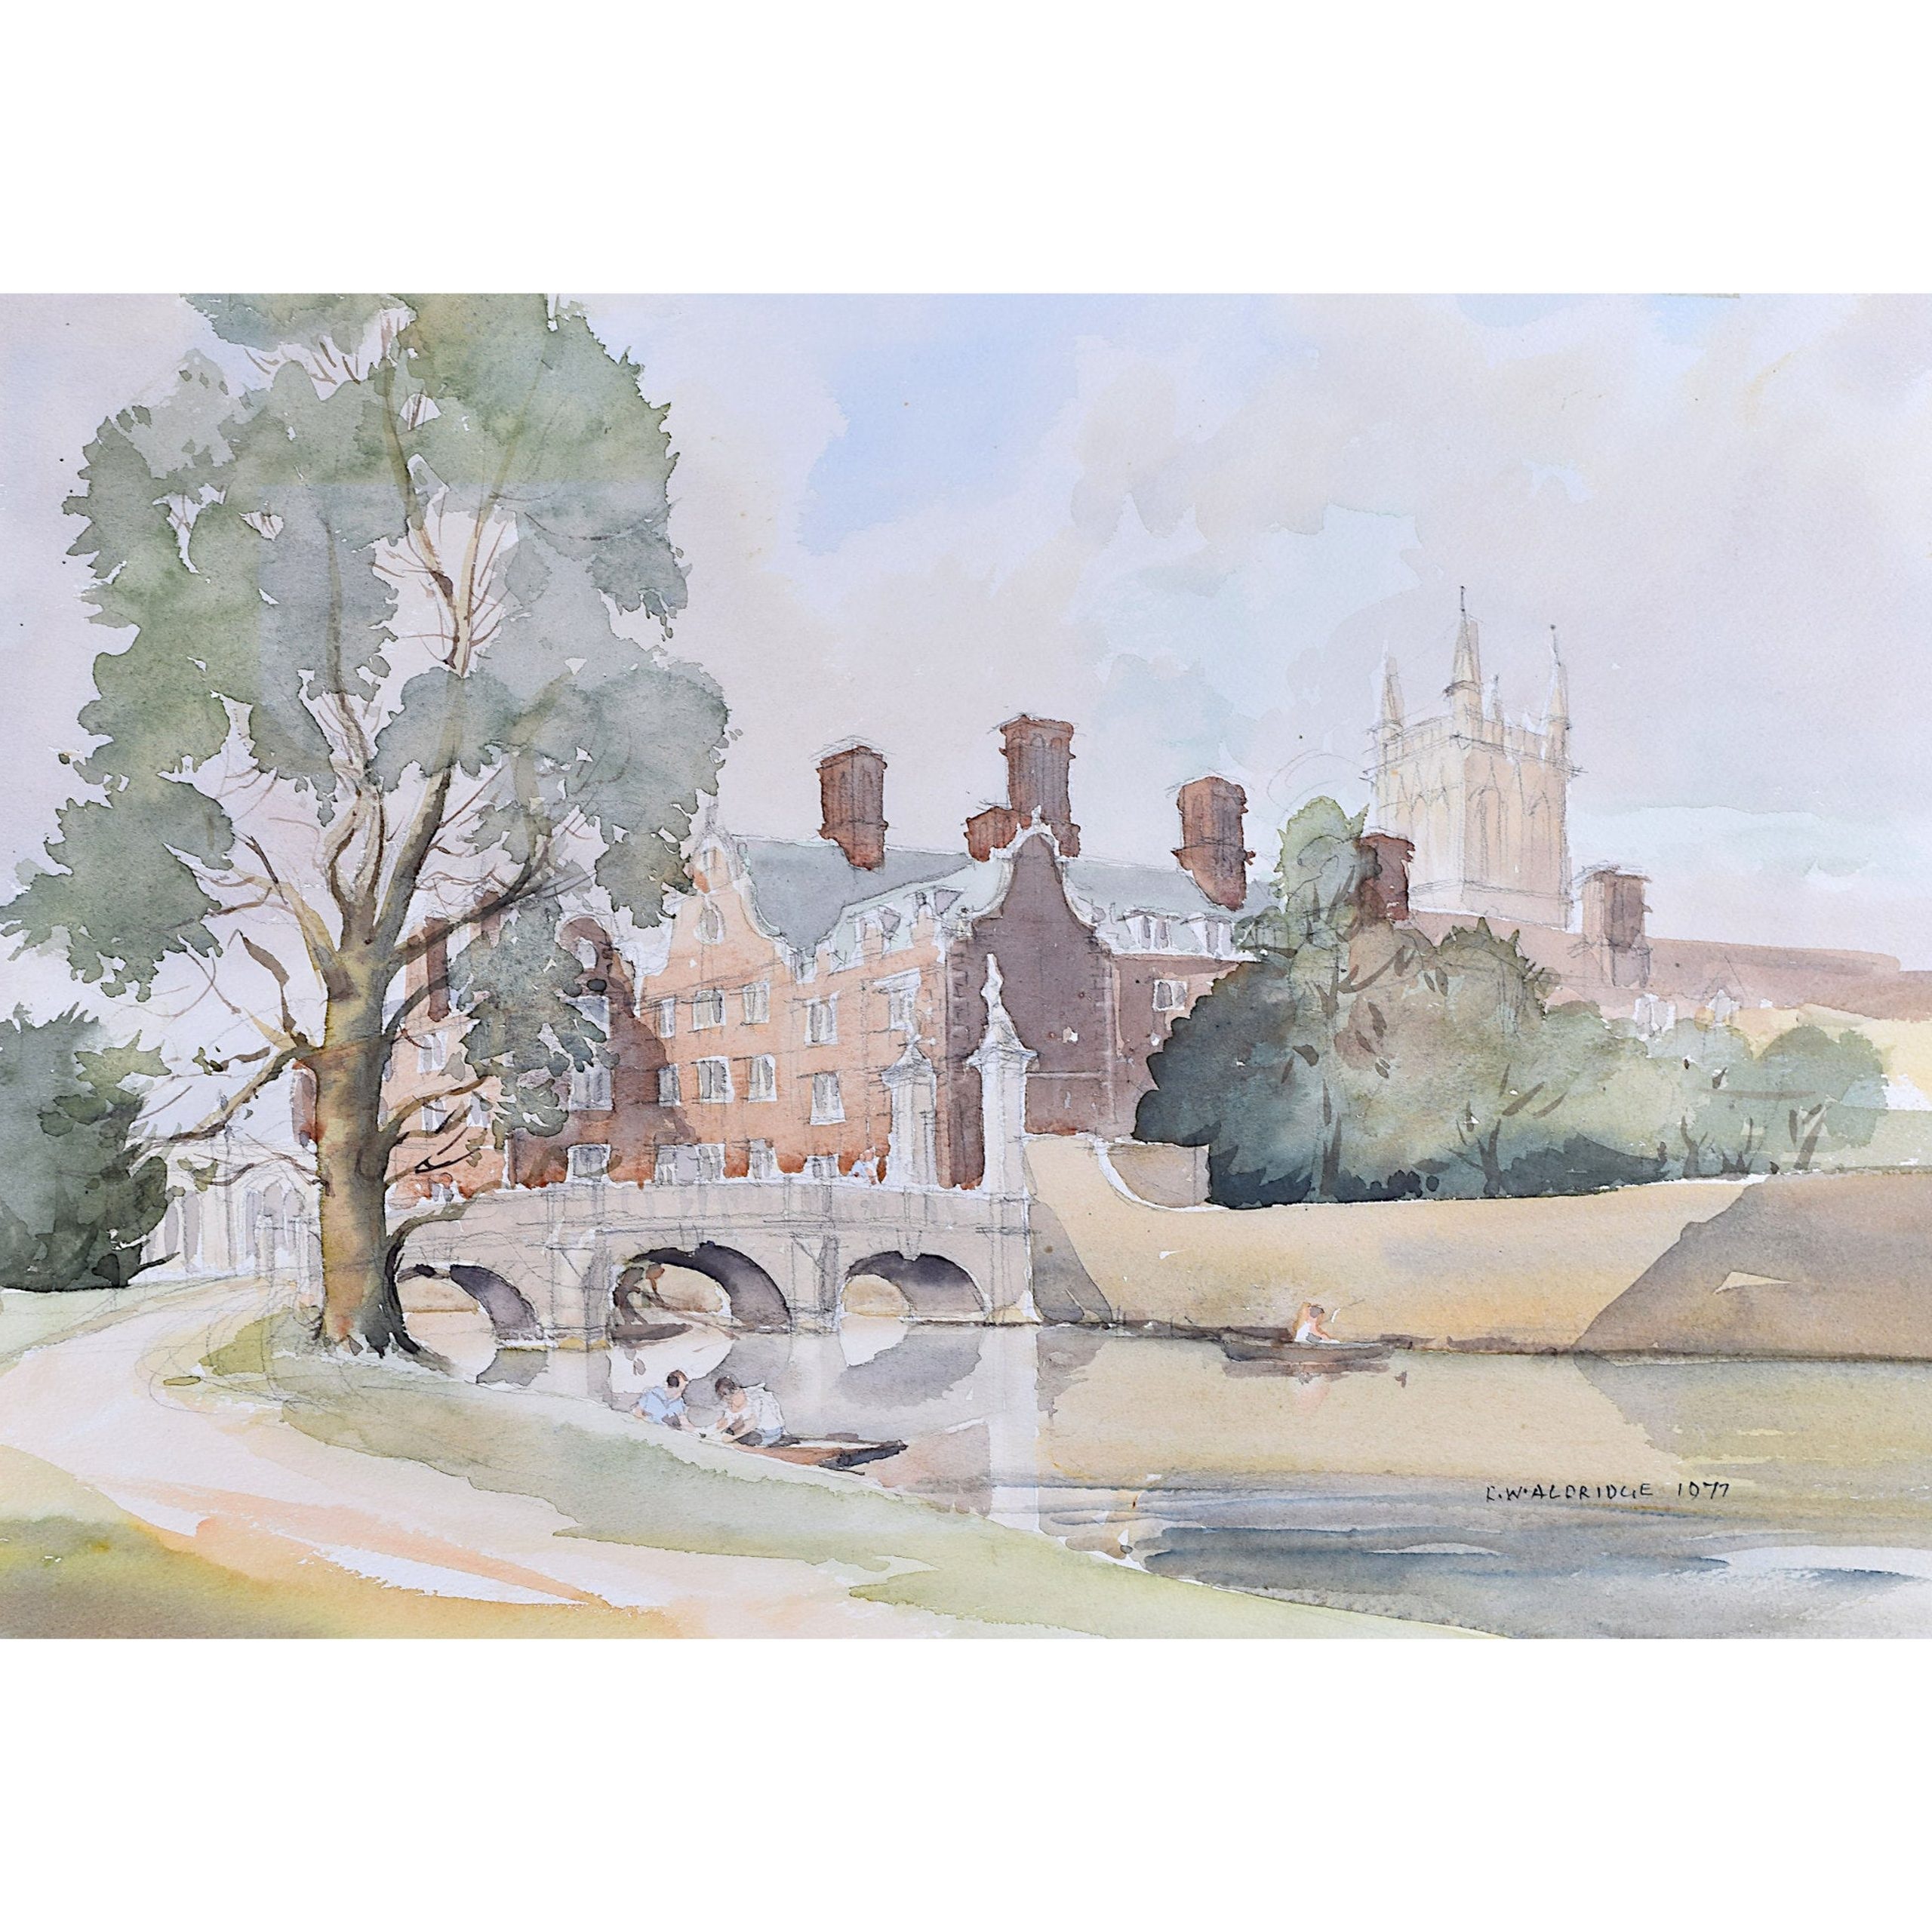 R Winton Aldridge St John's College Cambridge watercolour painting